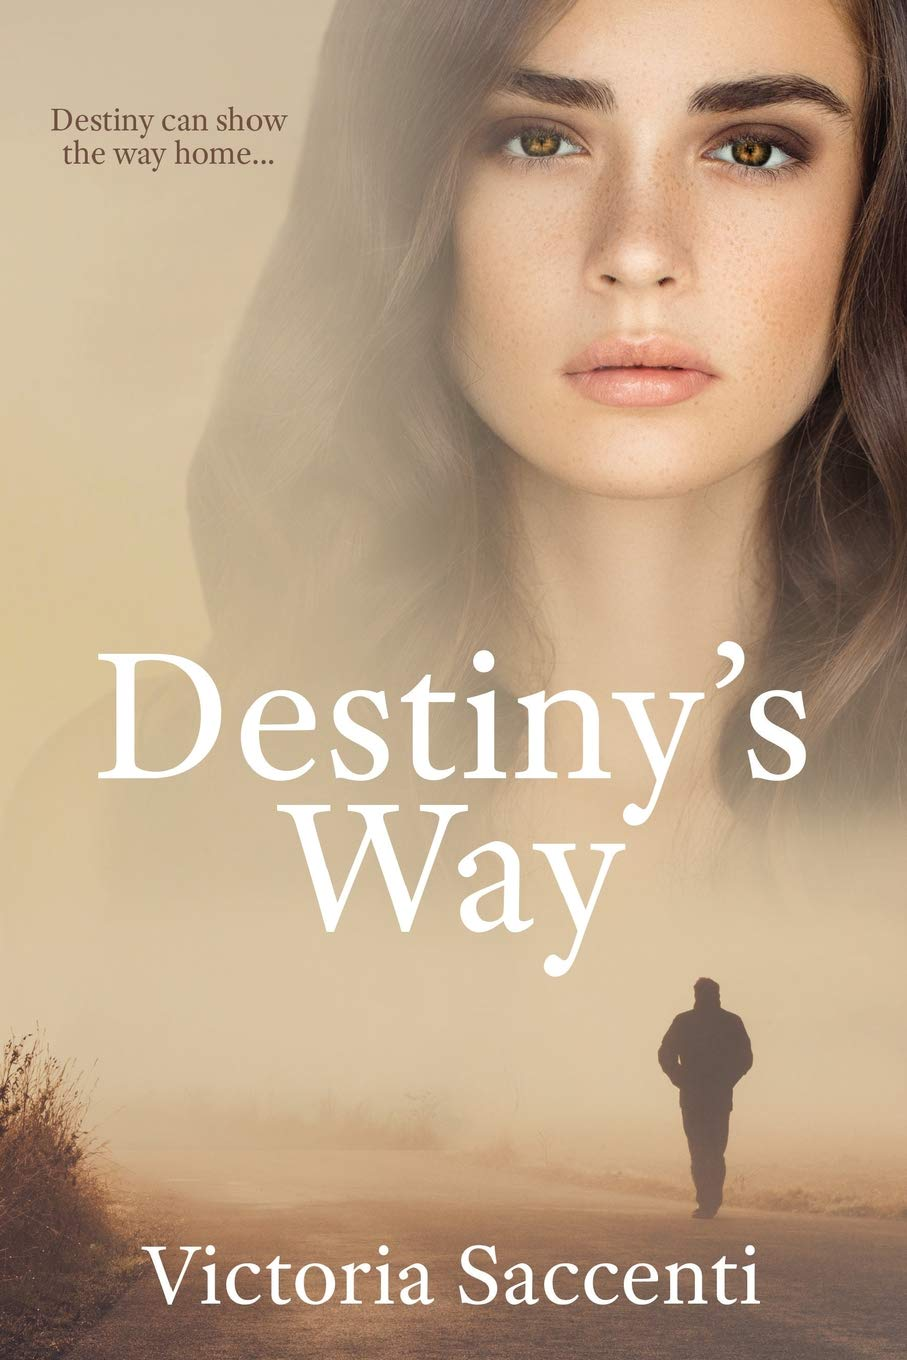 Destiny's Way (Destiny's Series) (Volume 3) pdf